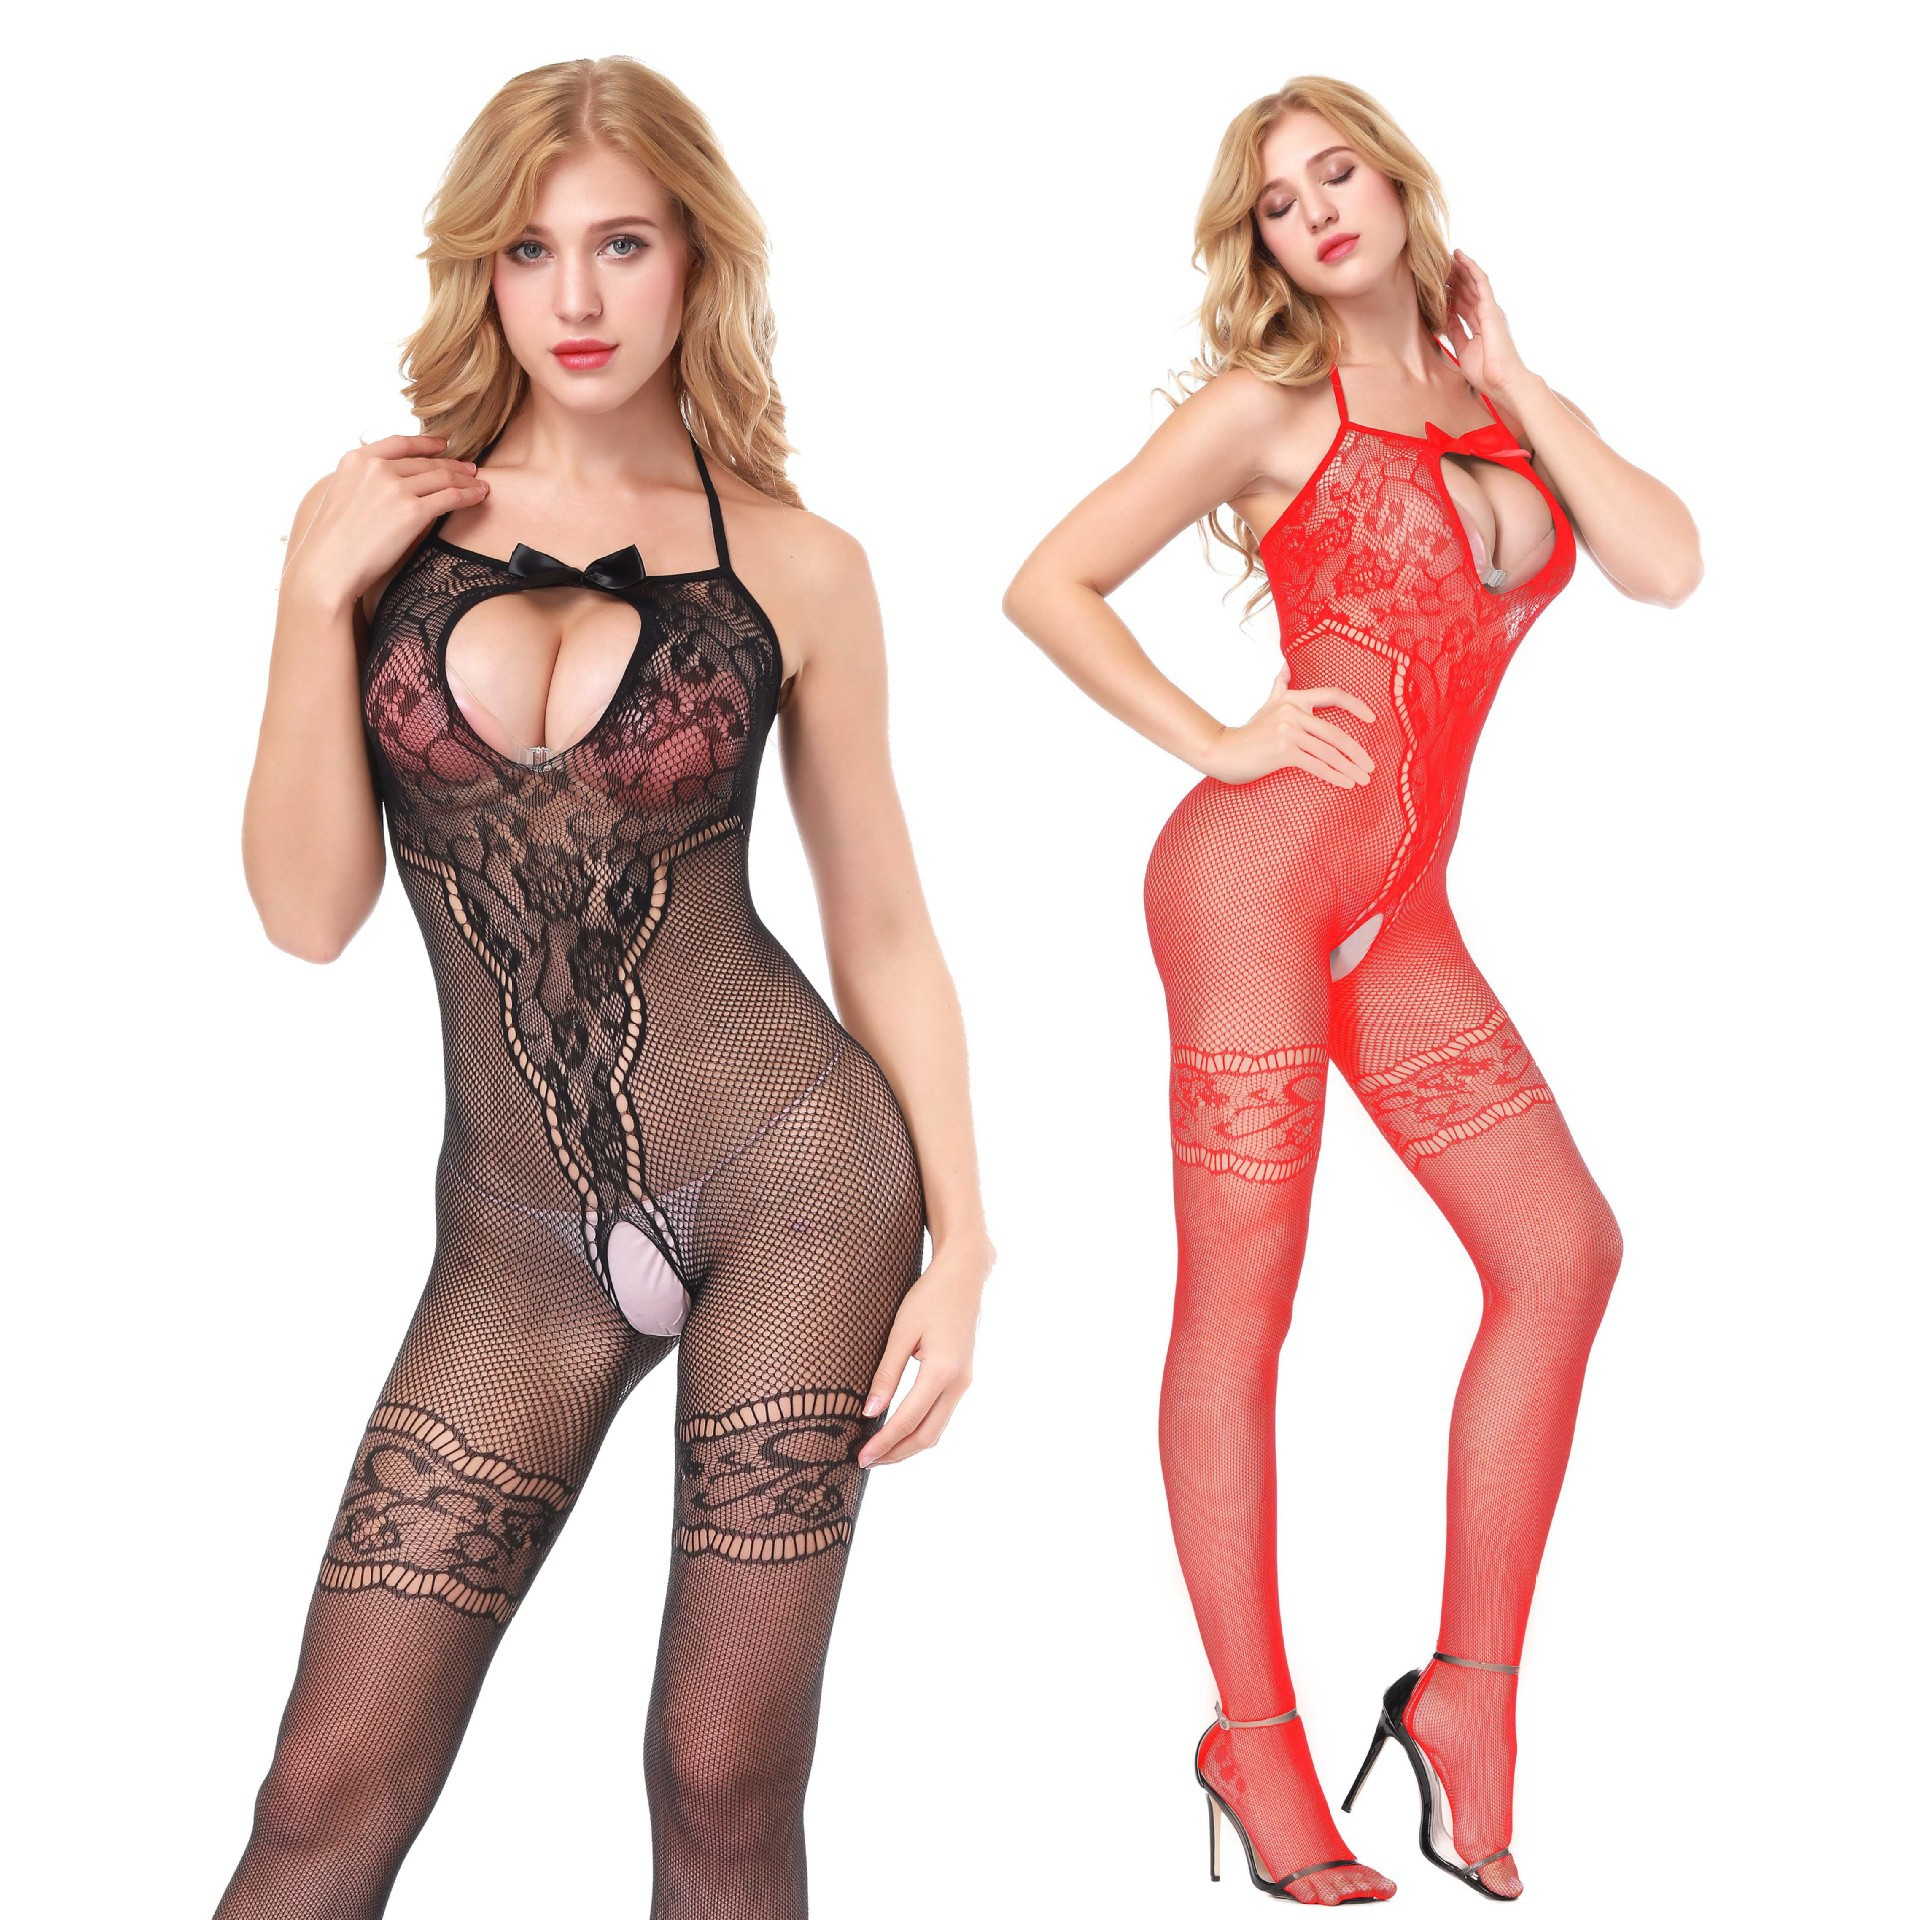 <font><b>Sexy</b></font> Fishnet Erotic Lingerie Plus Size Hot Erotic Costumes Teddy Lenceria Sex Clothes Open Crotch <font><b>Baby</b></font> <font><b>Doll</b></font> <font><b>Mujer</b></font> <font><b>Sexy</b></font> Underwear image